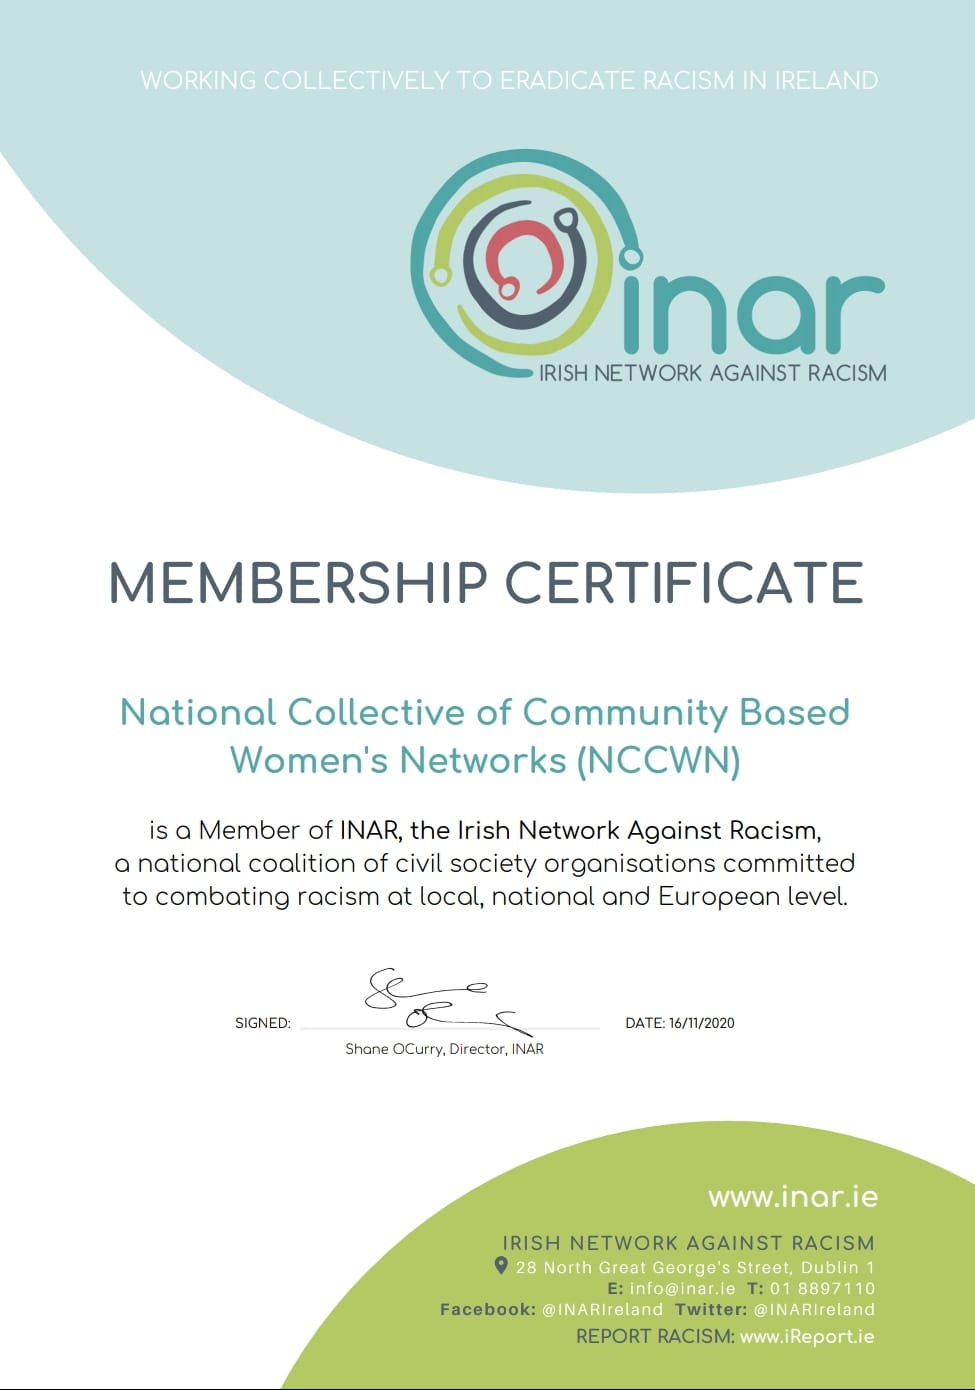 National Collective of Community Based Women's Networks are delighted to be official members of INAR - Irish Network Against Racism  INAR is the largest, dynamic and evergrowing Network against racism in Ireland. INAR is a national network of now 124 civil society organisations working collectively to combat racism in our country.